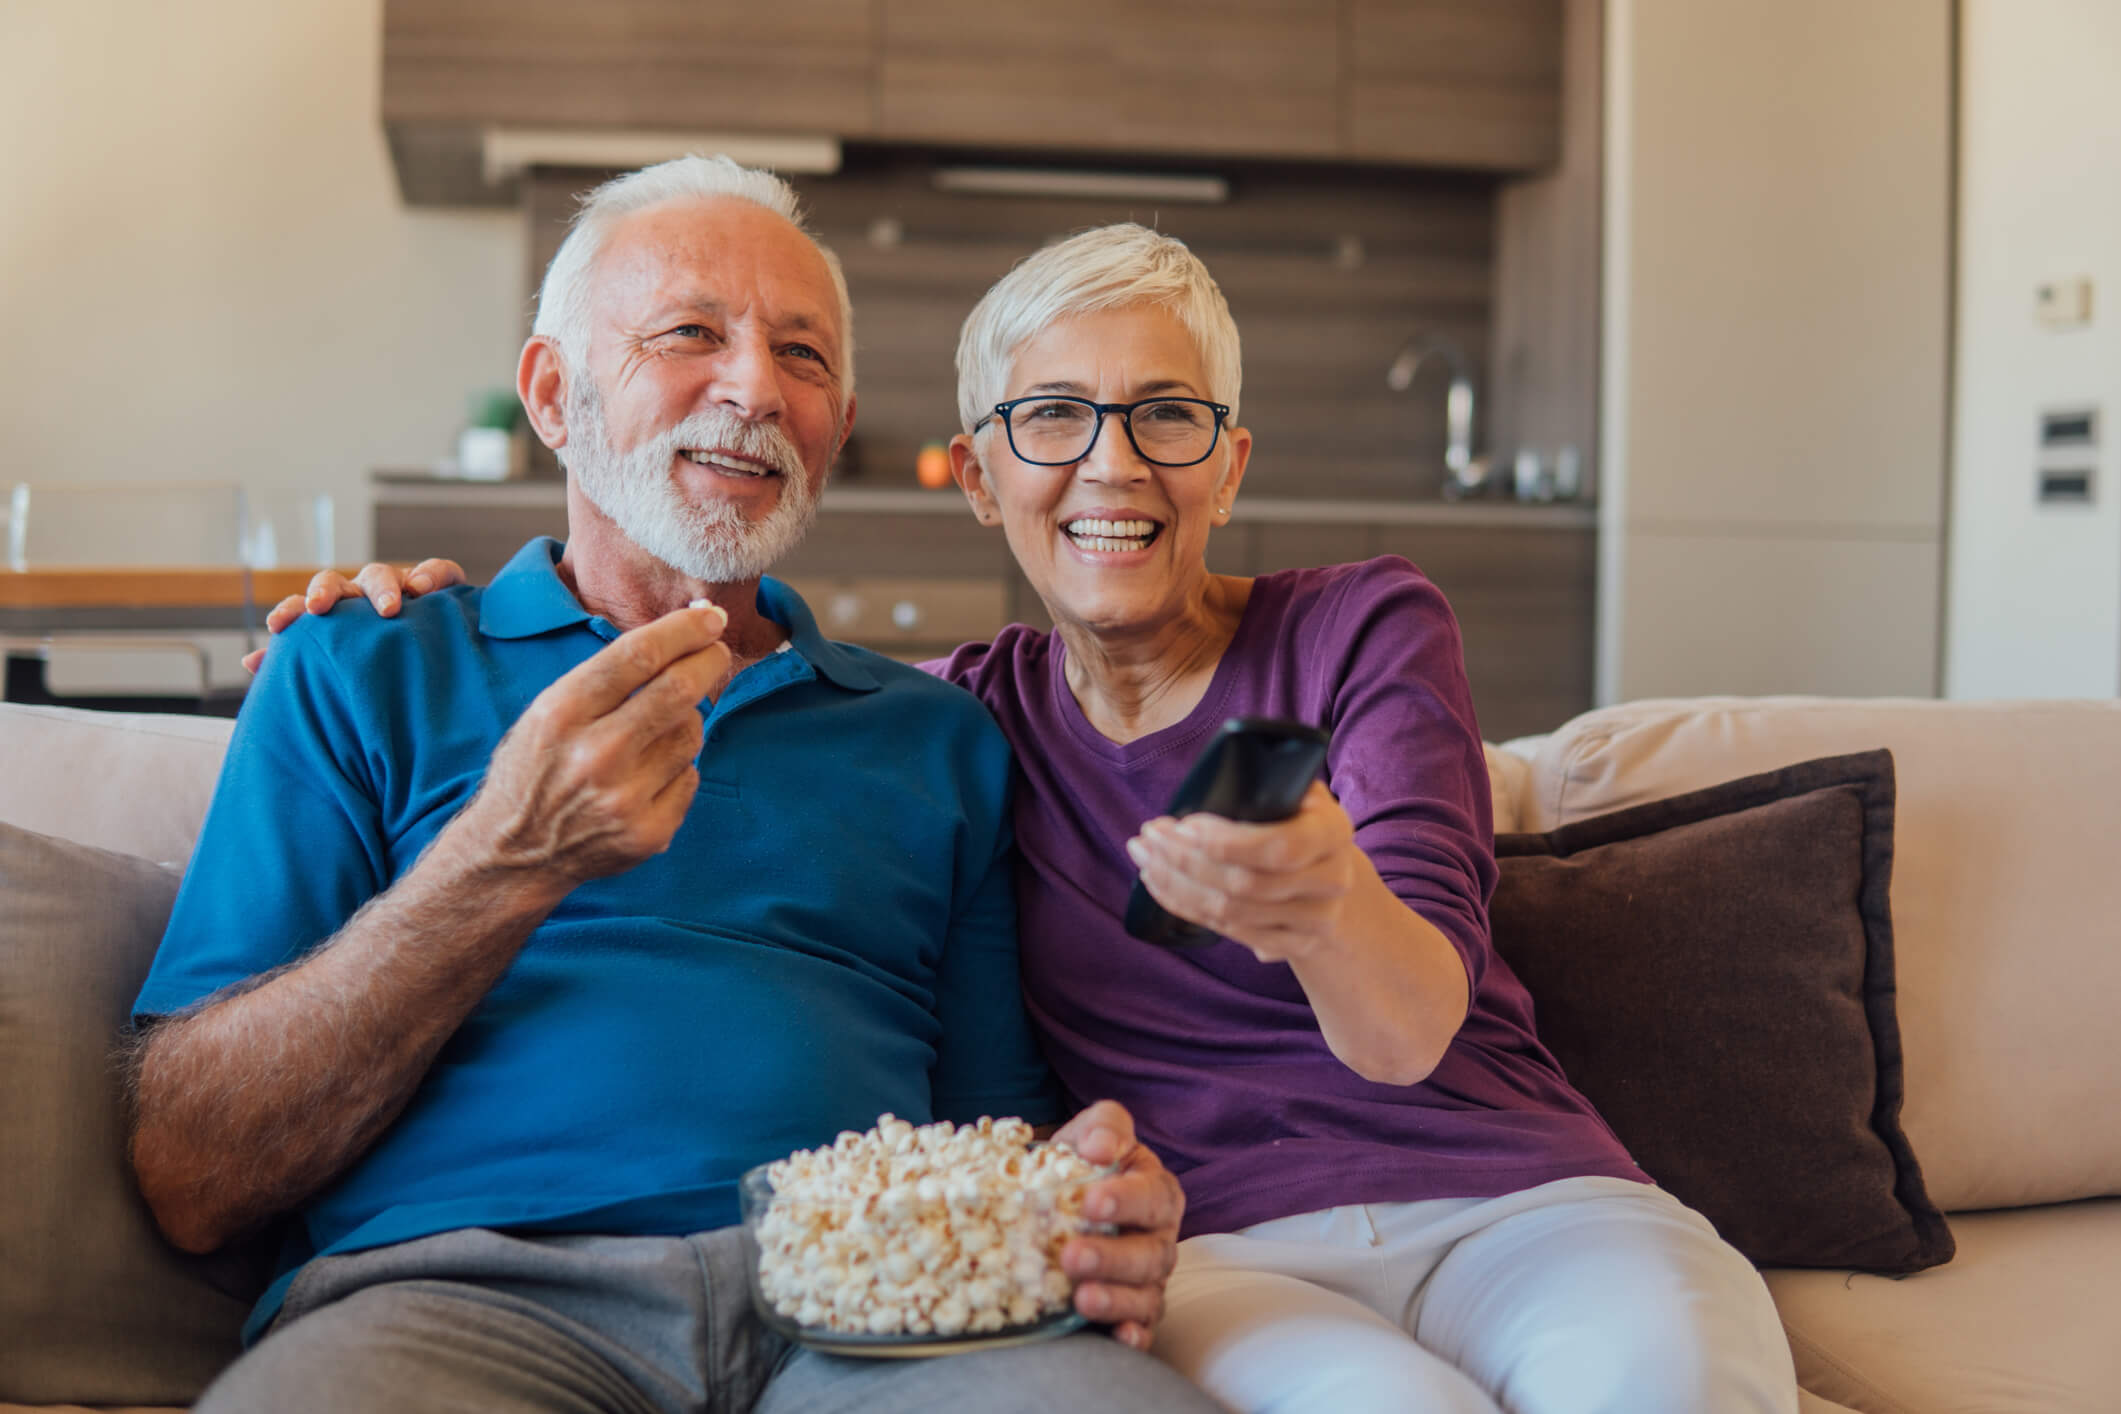 3 Reasons Your Senior Living Community Should Consider a New Video Provider